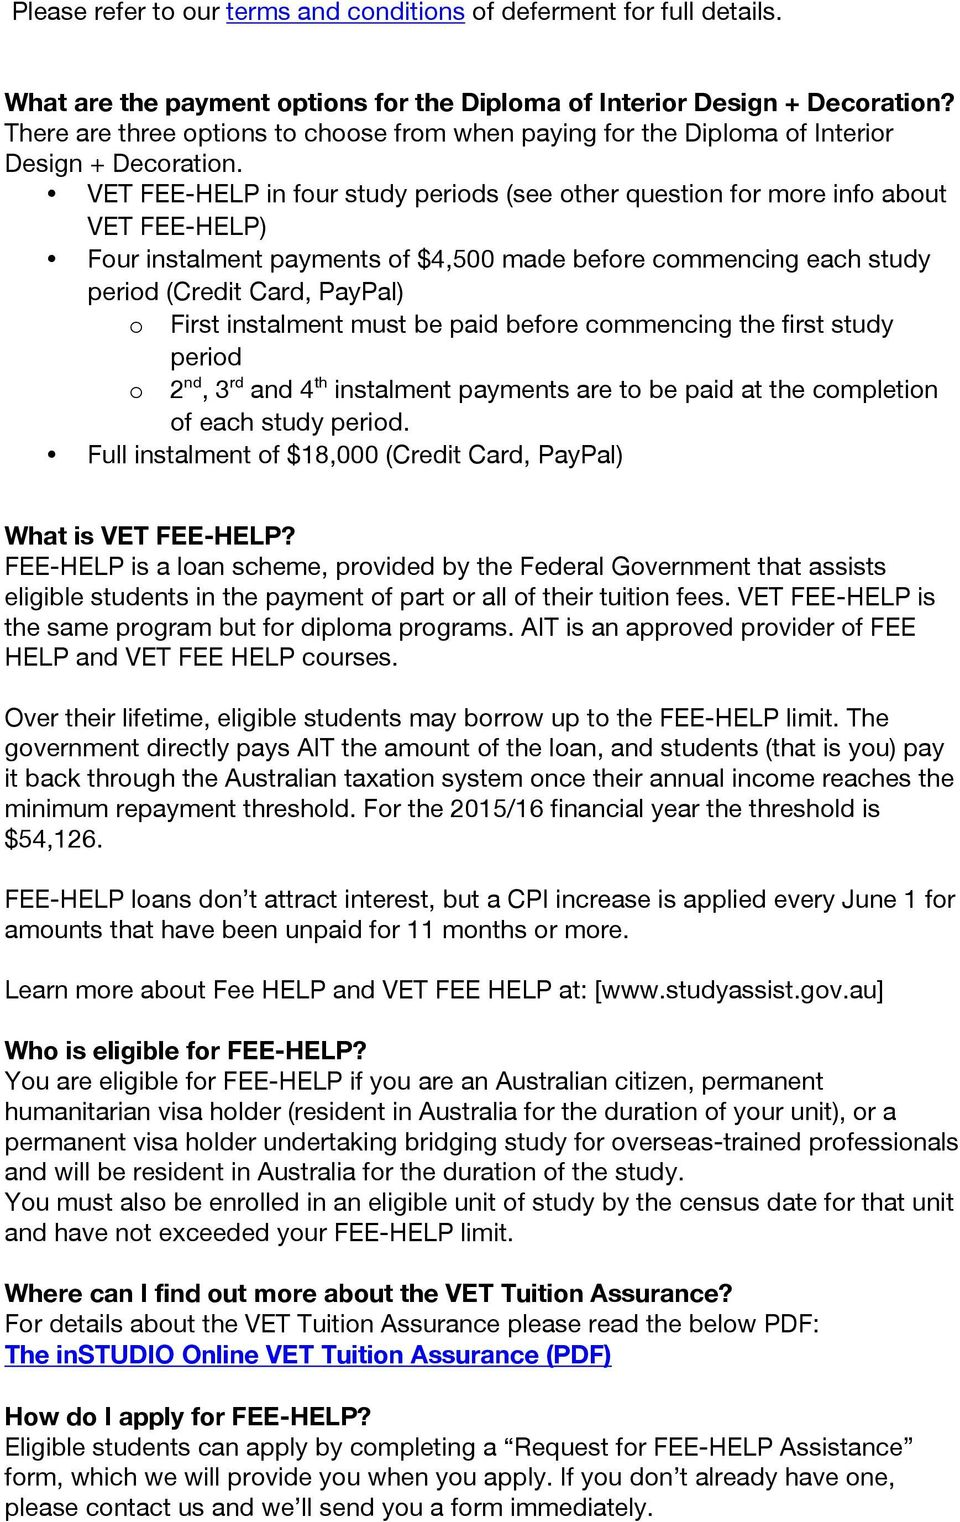 VET FEE-HELP in four study periods (see other question for more info about VET FEE-HELP) Four instalment payments of $4,500 made before commencing each study period (Credit Card, PayPal) o First